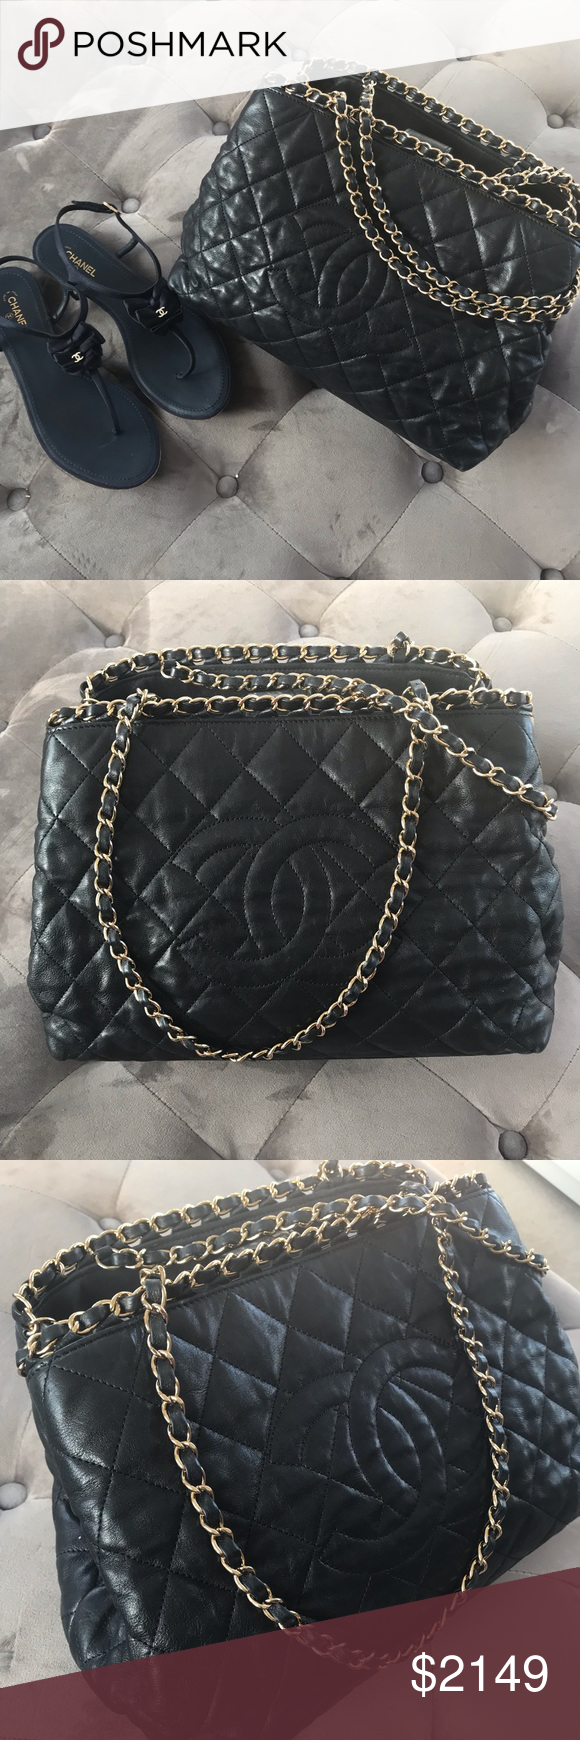 4e52c1d58858cc CHANEL Calfskin Quilted Small Chain Me Tote CHANEL Calfskin Quilted Small  Chain Me Tote black.